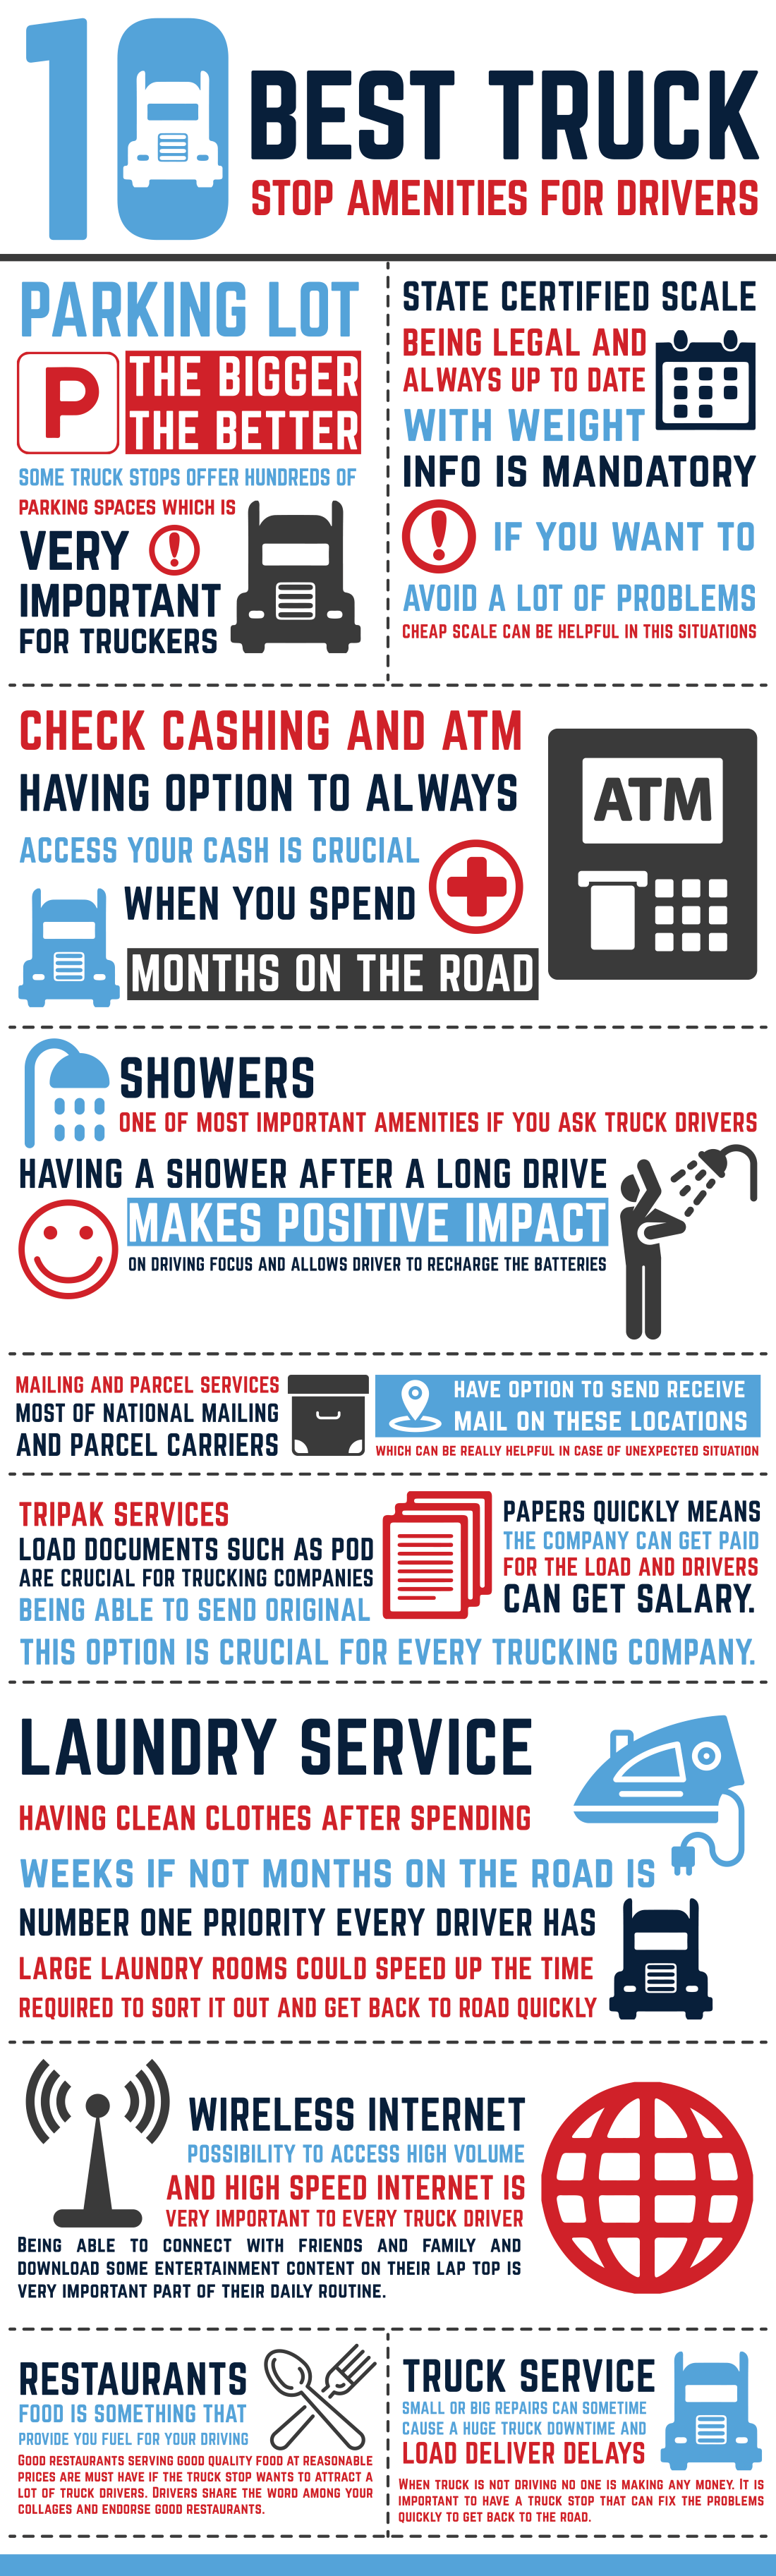 INFOGRAPHIC 10 Best Truck Stop Amenities For Drivers